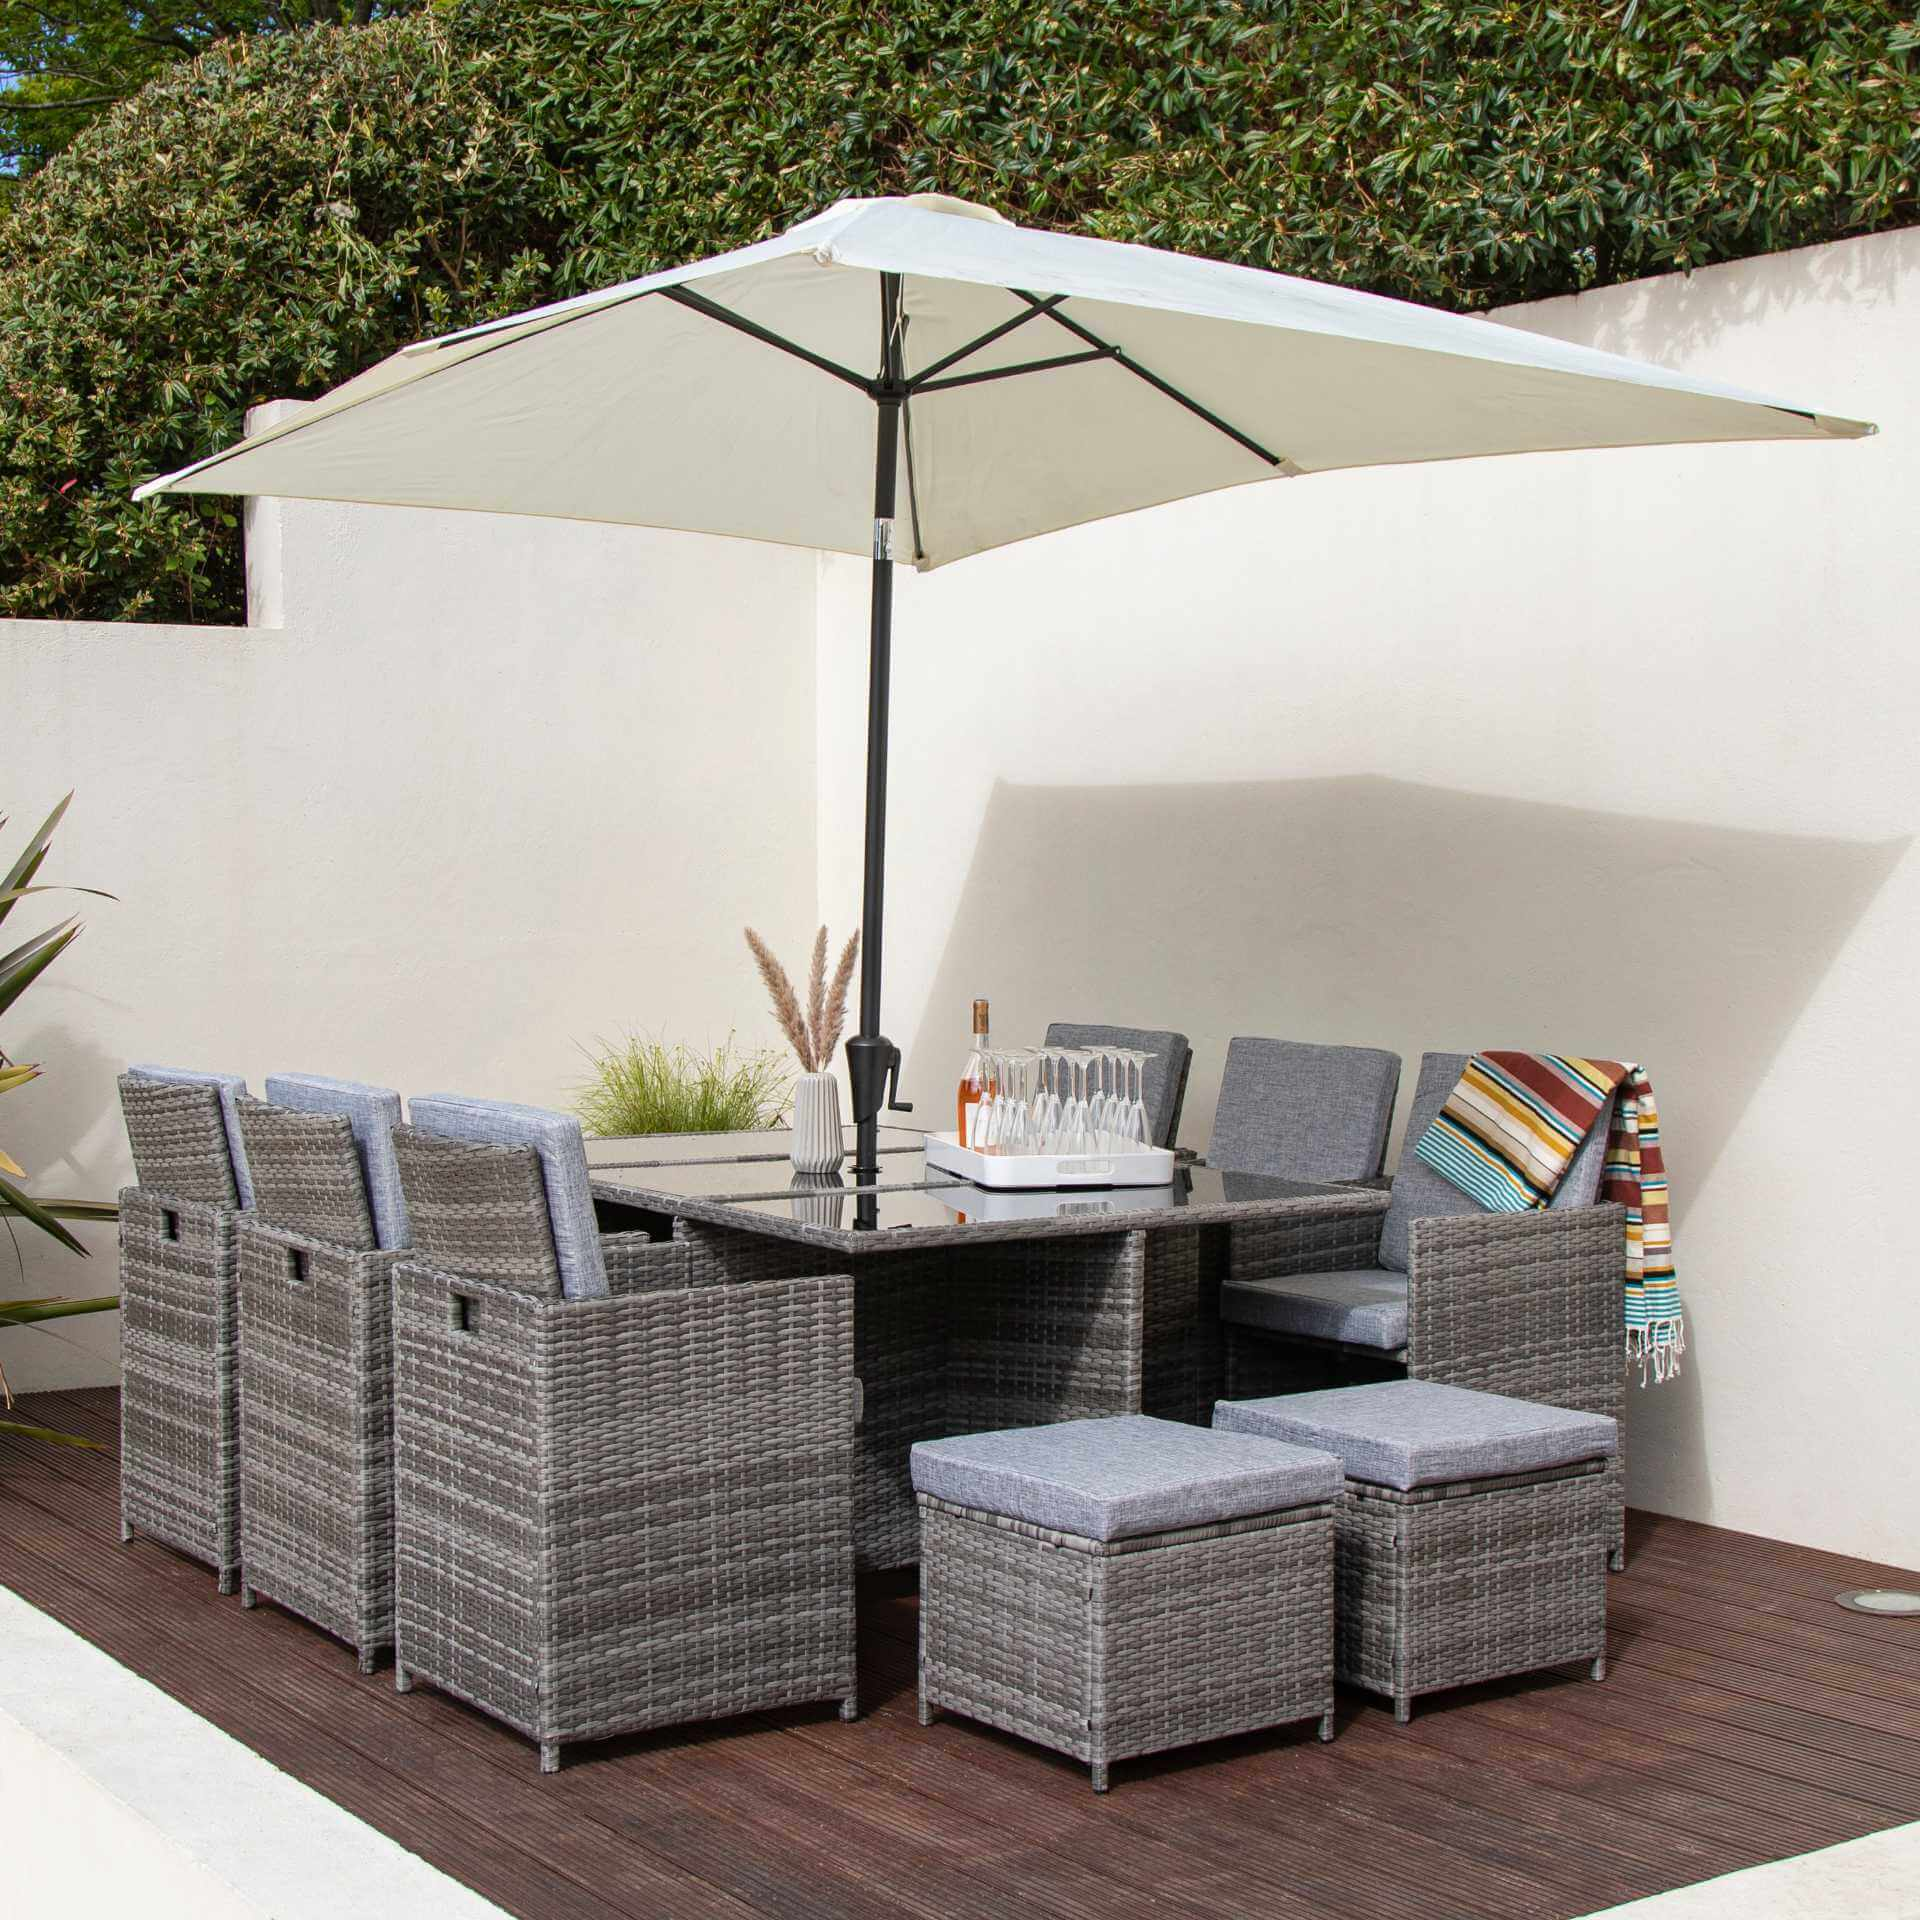 10 Seater Rattan Cube Outdoor Dining Set with Parasol - Grey Weave - Laura James